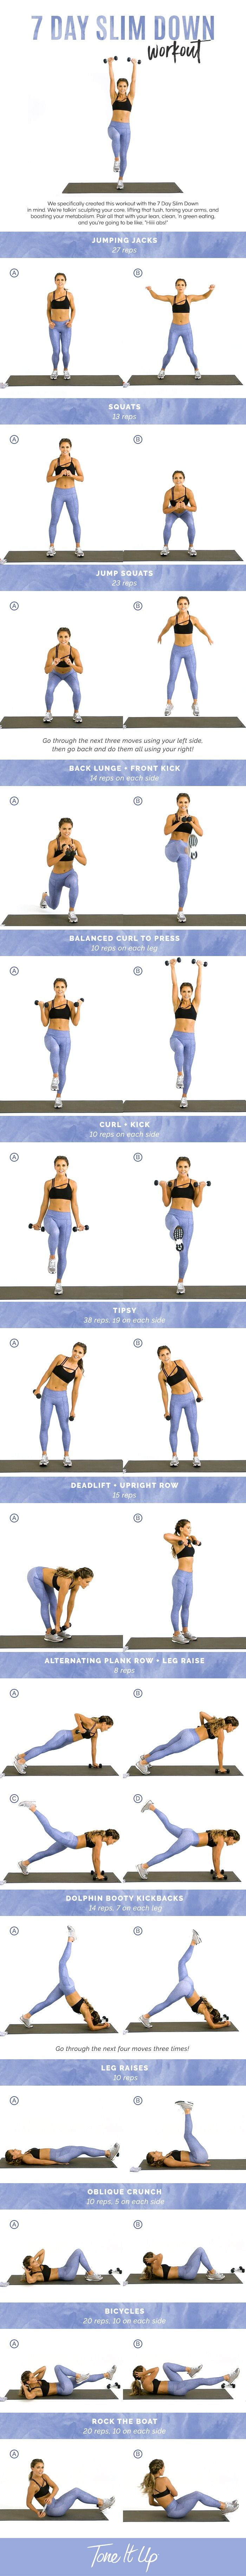 New 7 Day Slim Down Workout on ToneItUp.com!